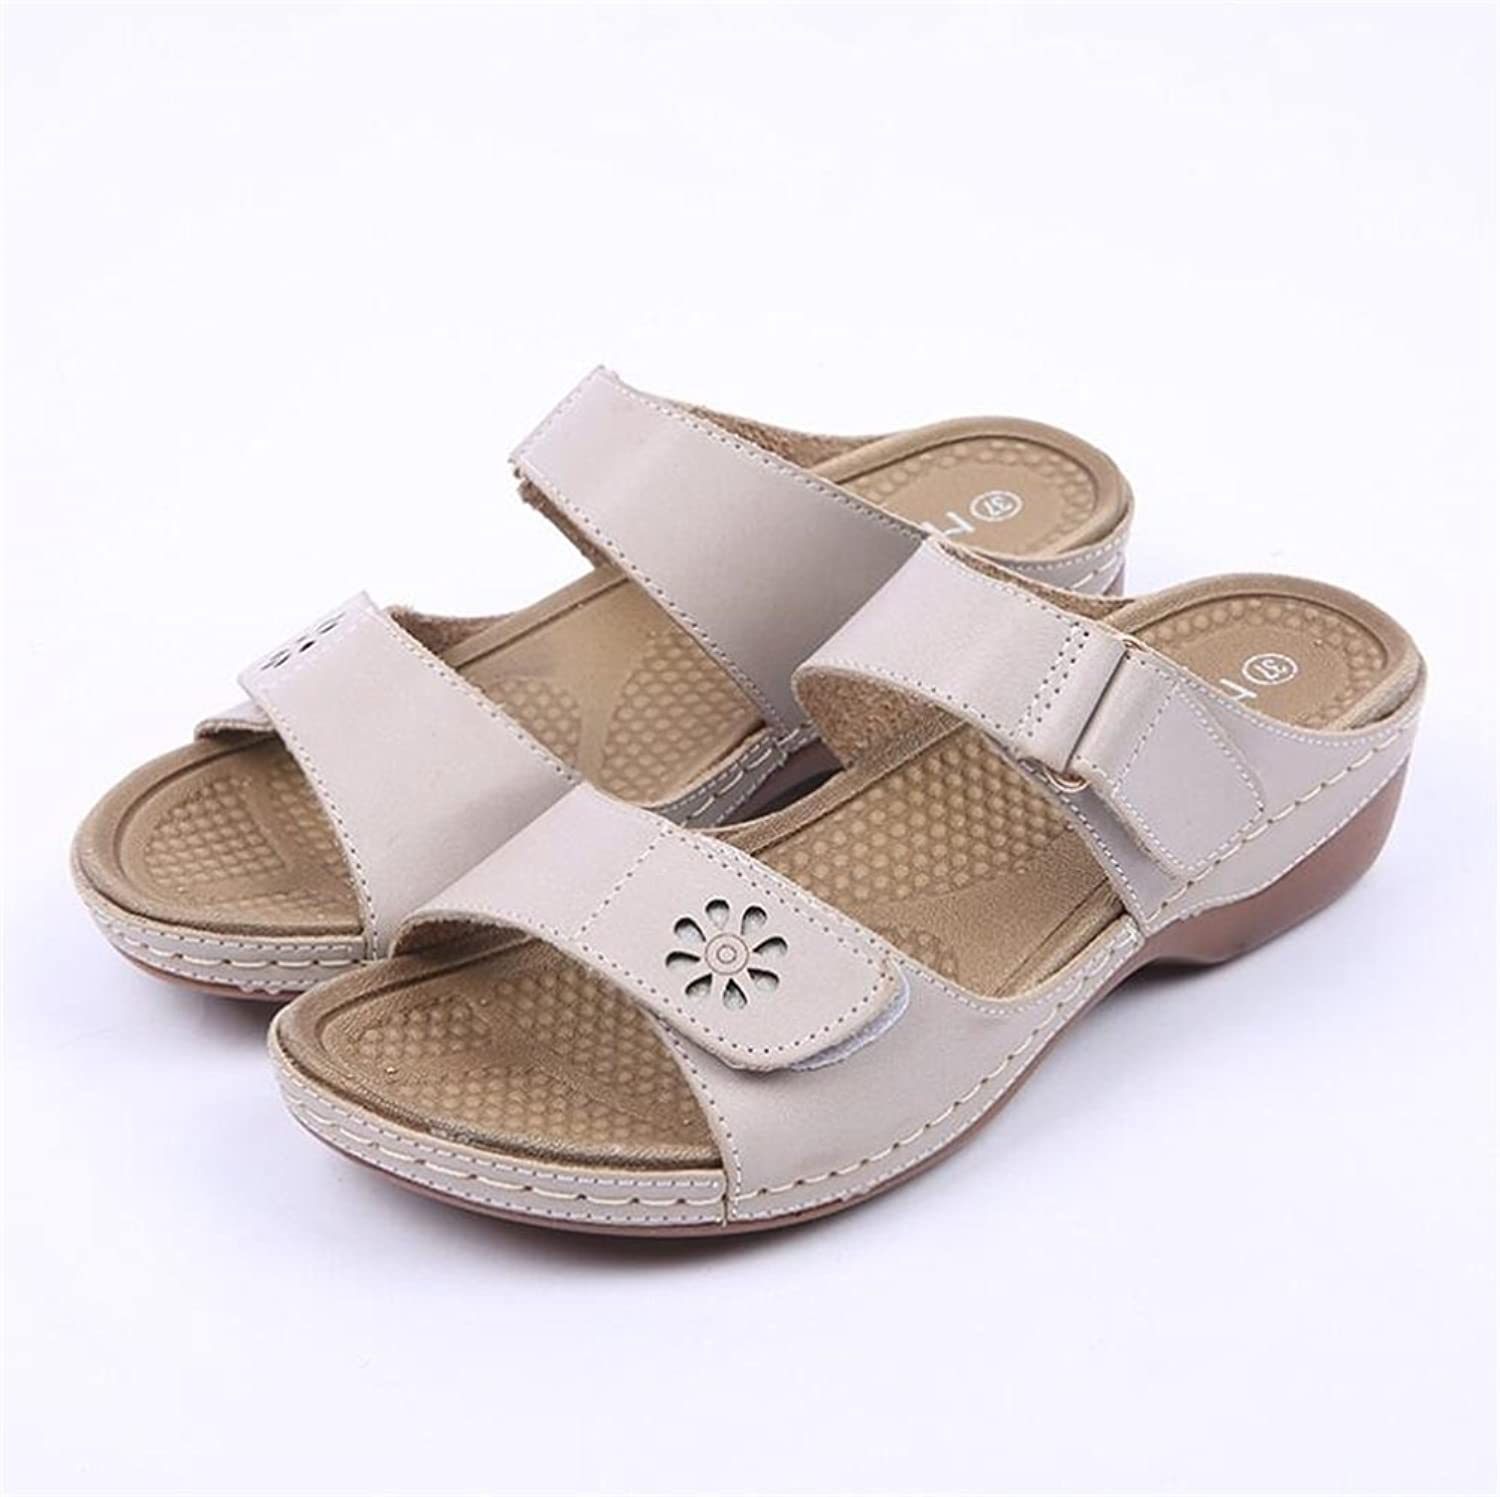 Exing Women's shoes New Summer Sandals Slipper Mom shoes Rome Style Wedge Heel Velcro Ladies shoes Sandals